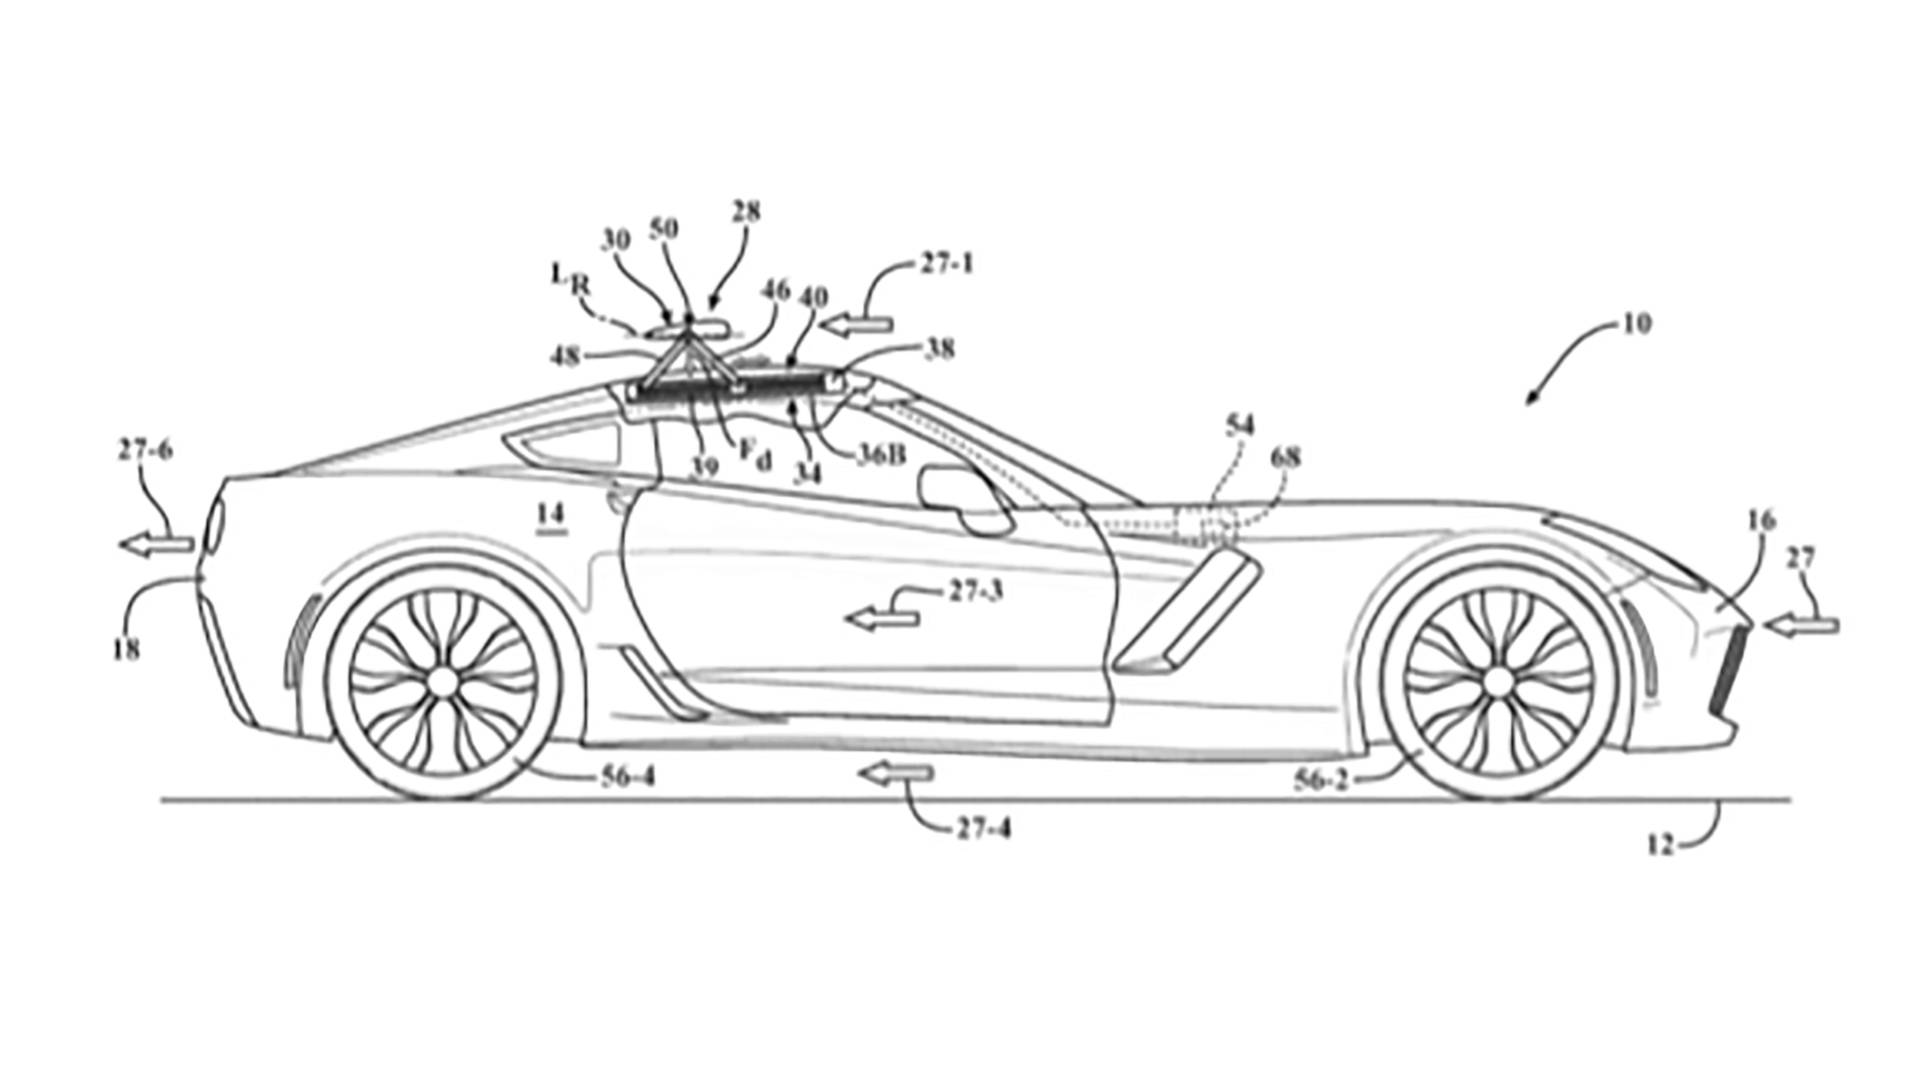 chevy-corvette-active-aero-patents (6)